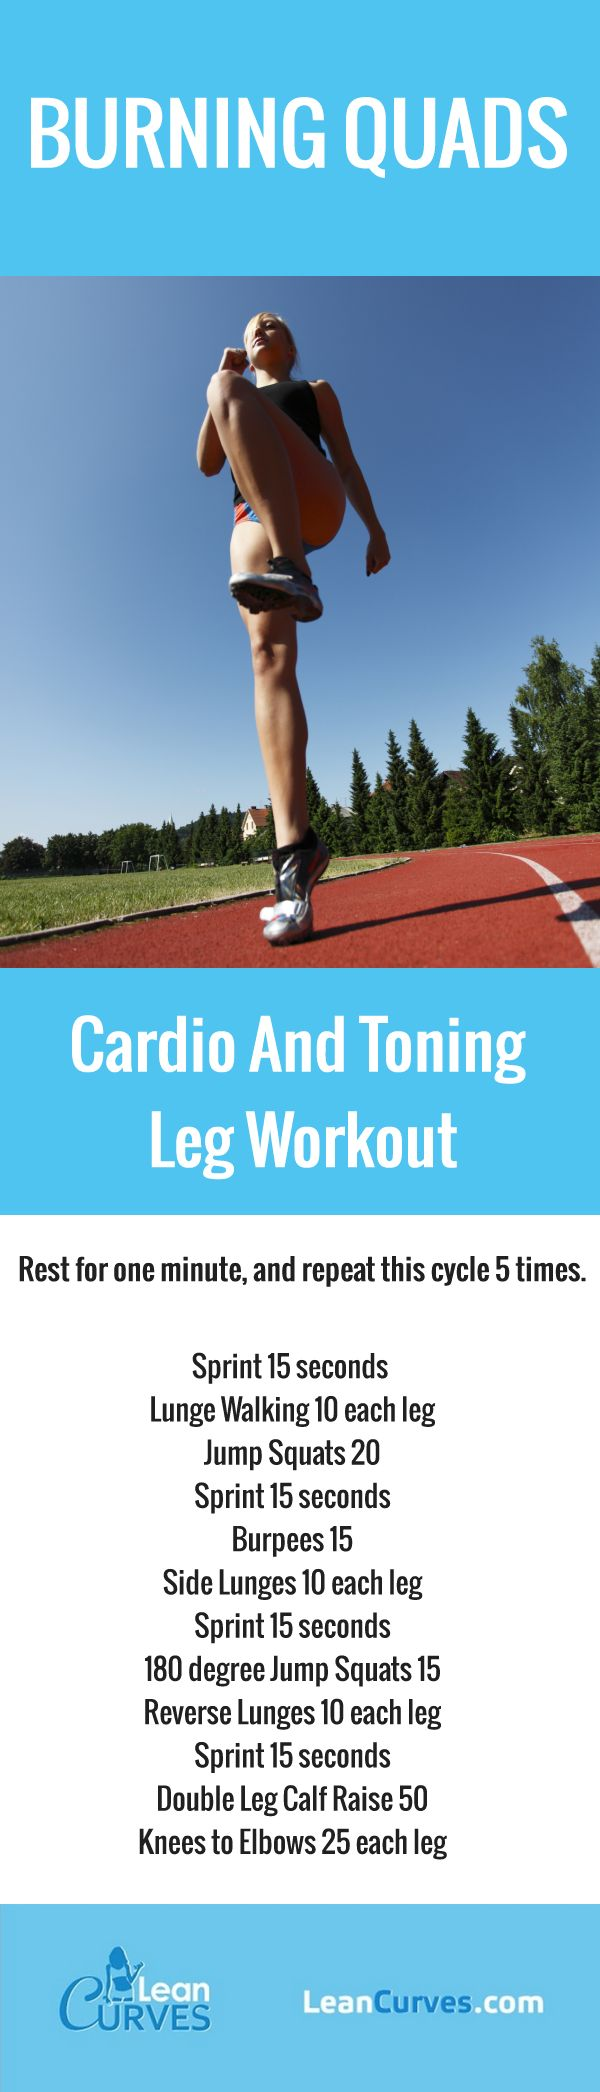 Burning Quads Cardio And Toning Leg Workout - Lean Curves